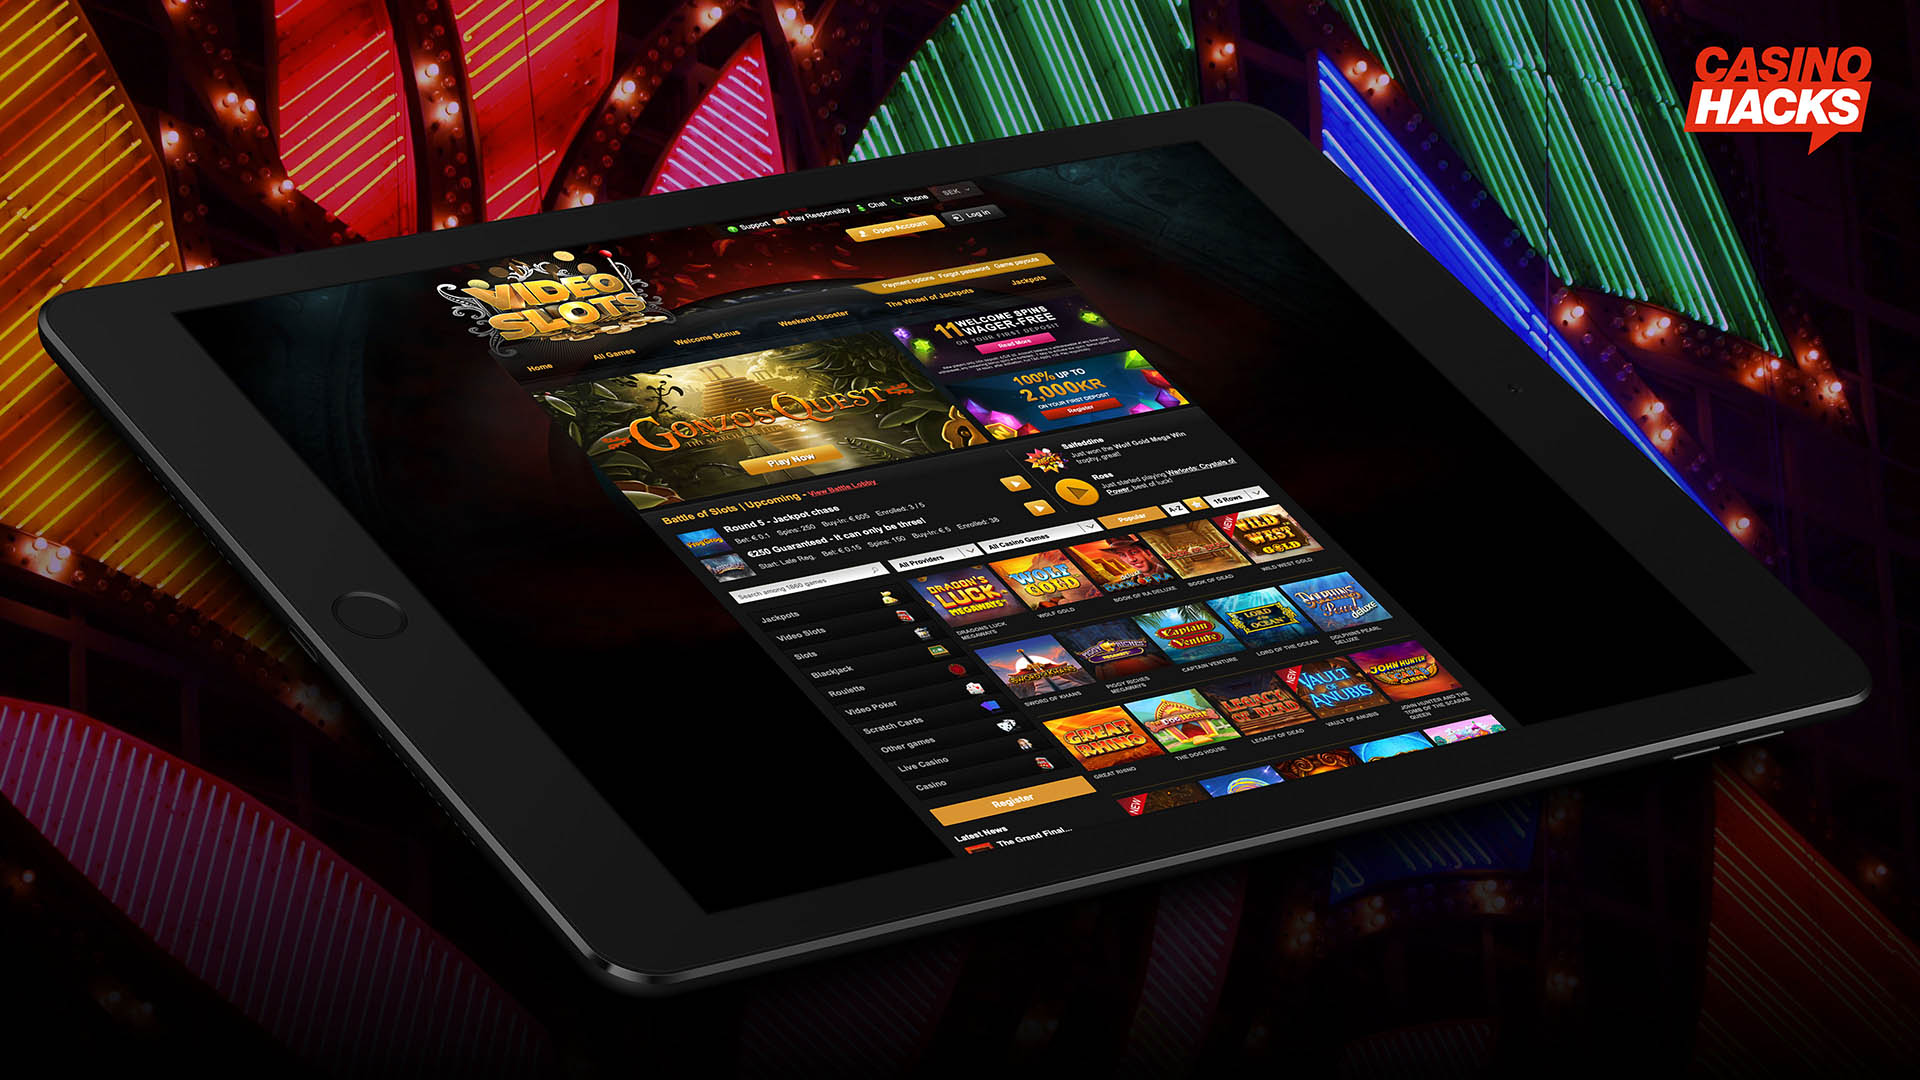 HOW TO PLAY GAME IN CASINO FOR BEGINNERS